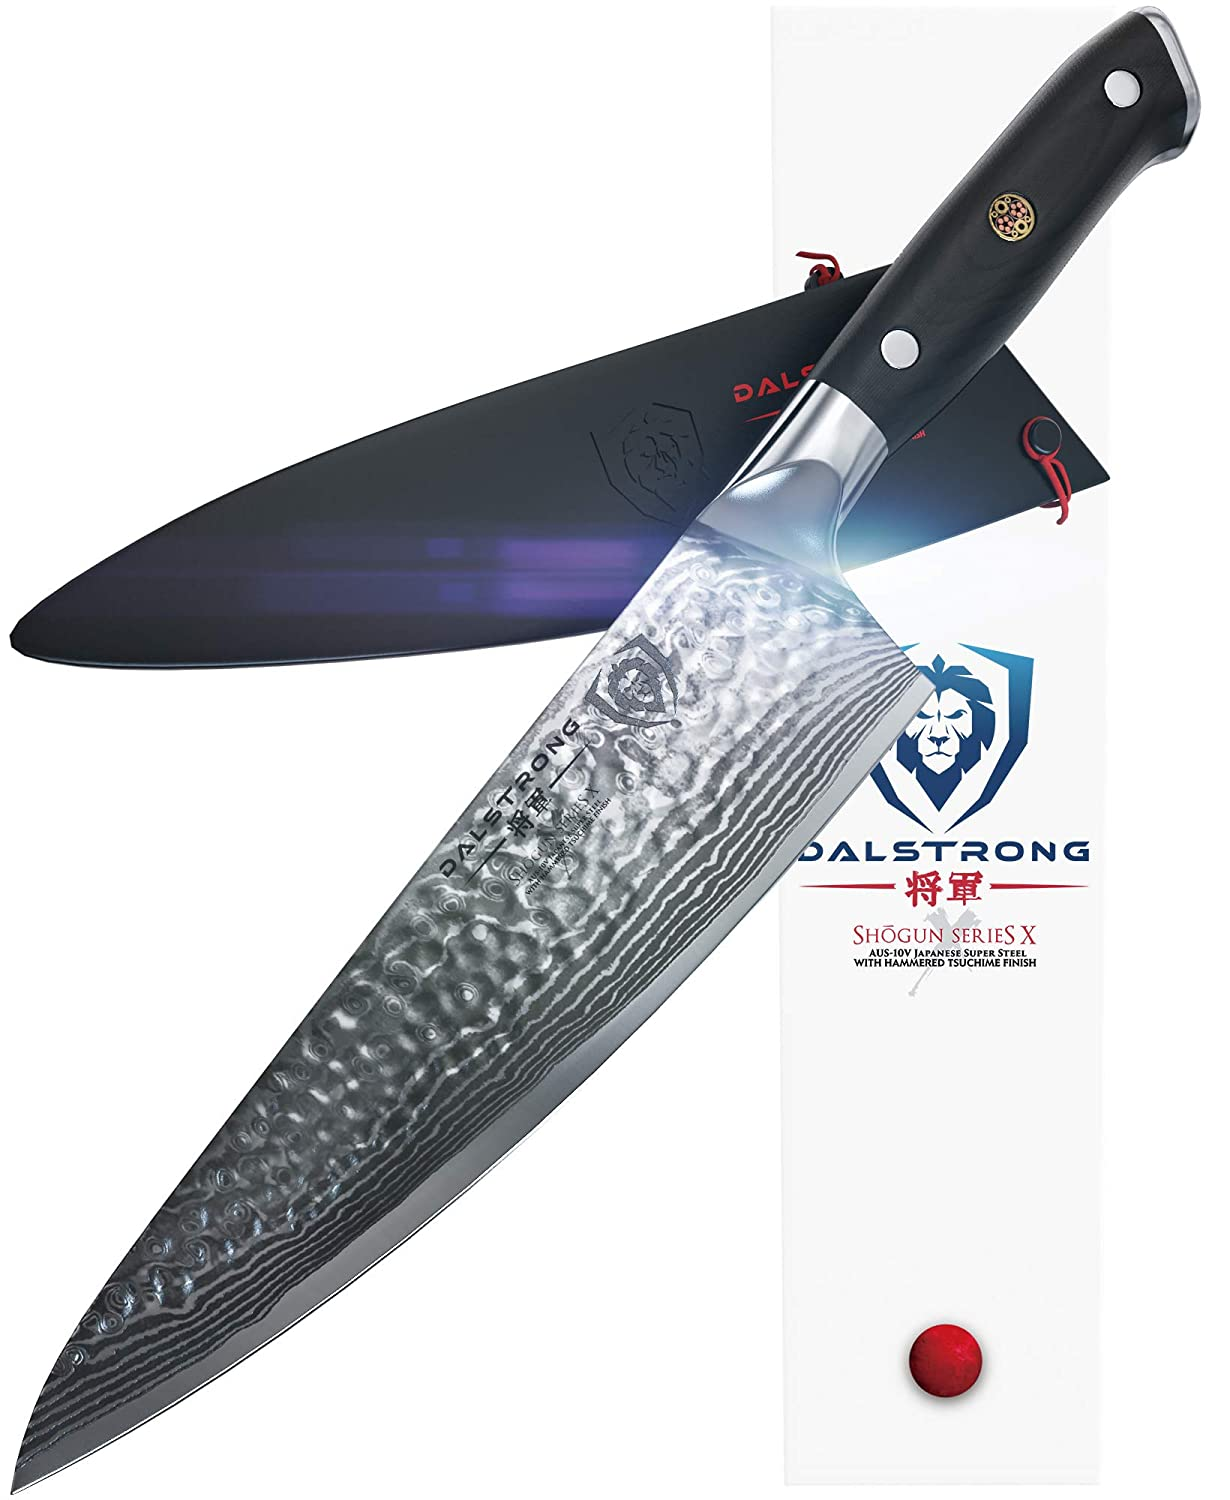 """DALSTRONG Chef's Knife - Shogun Series X Gyuto - Damascus - Japanese AUS-10V - Vacuum Treated - Hammered Finish - 8"""" - w/Guard"""